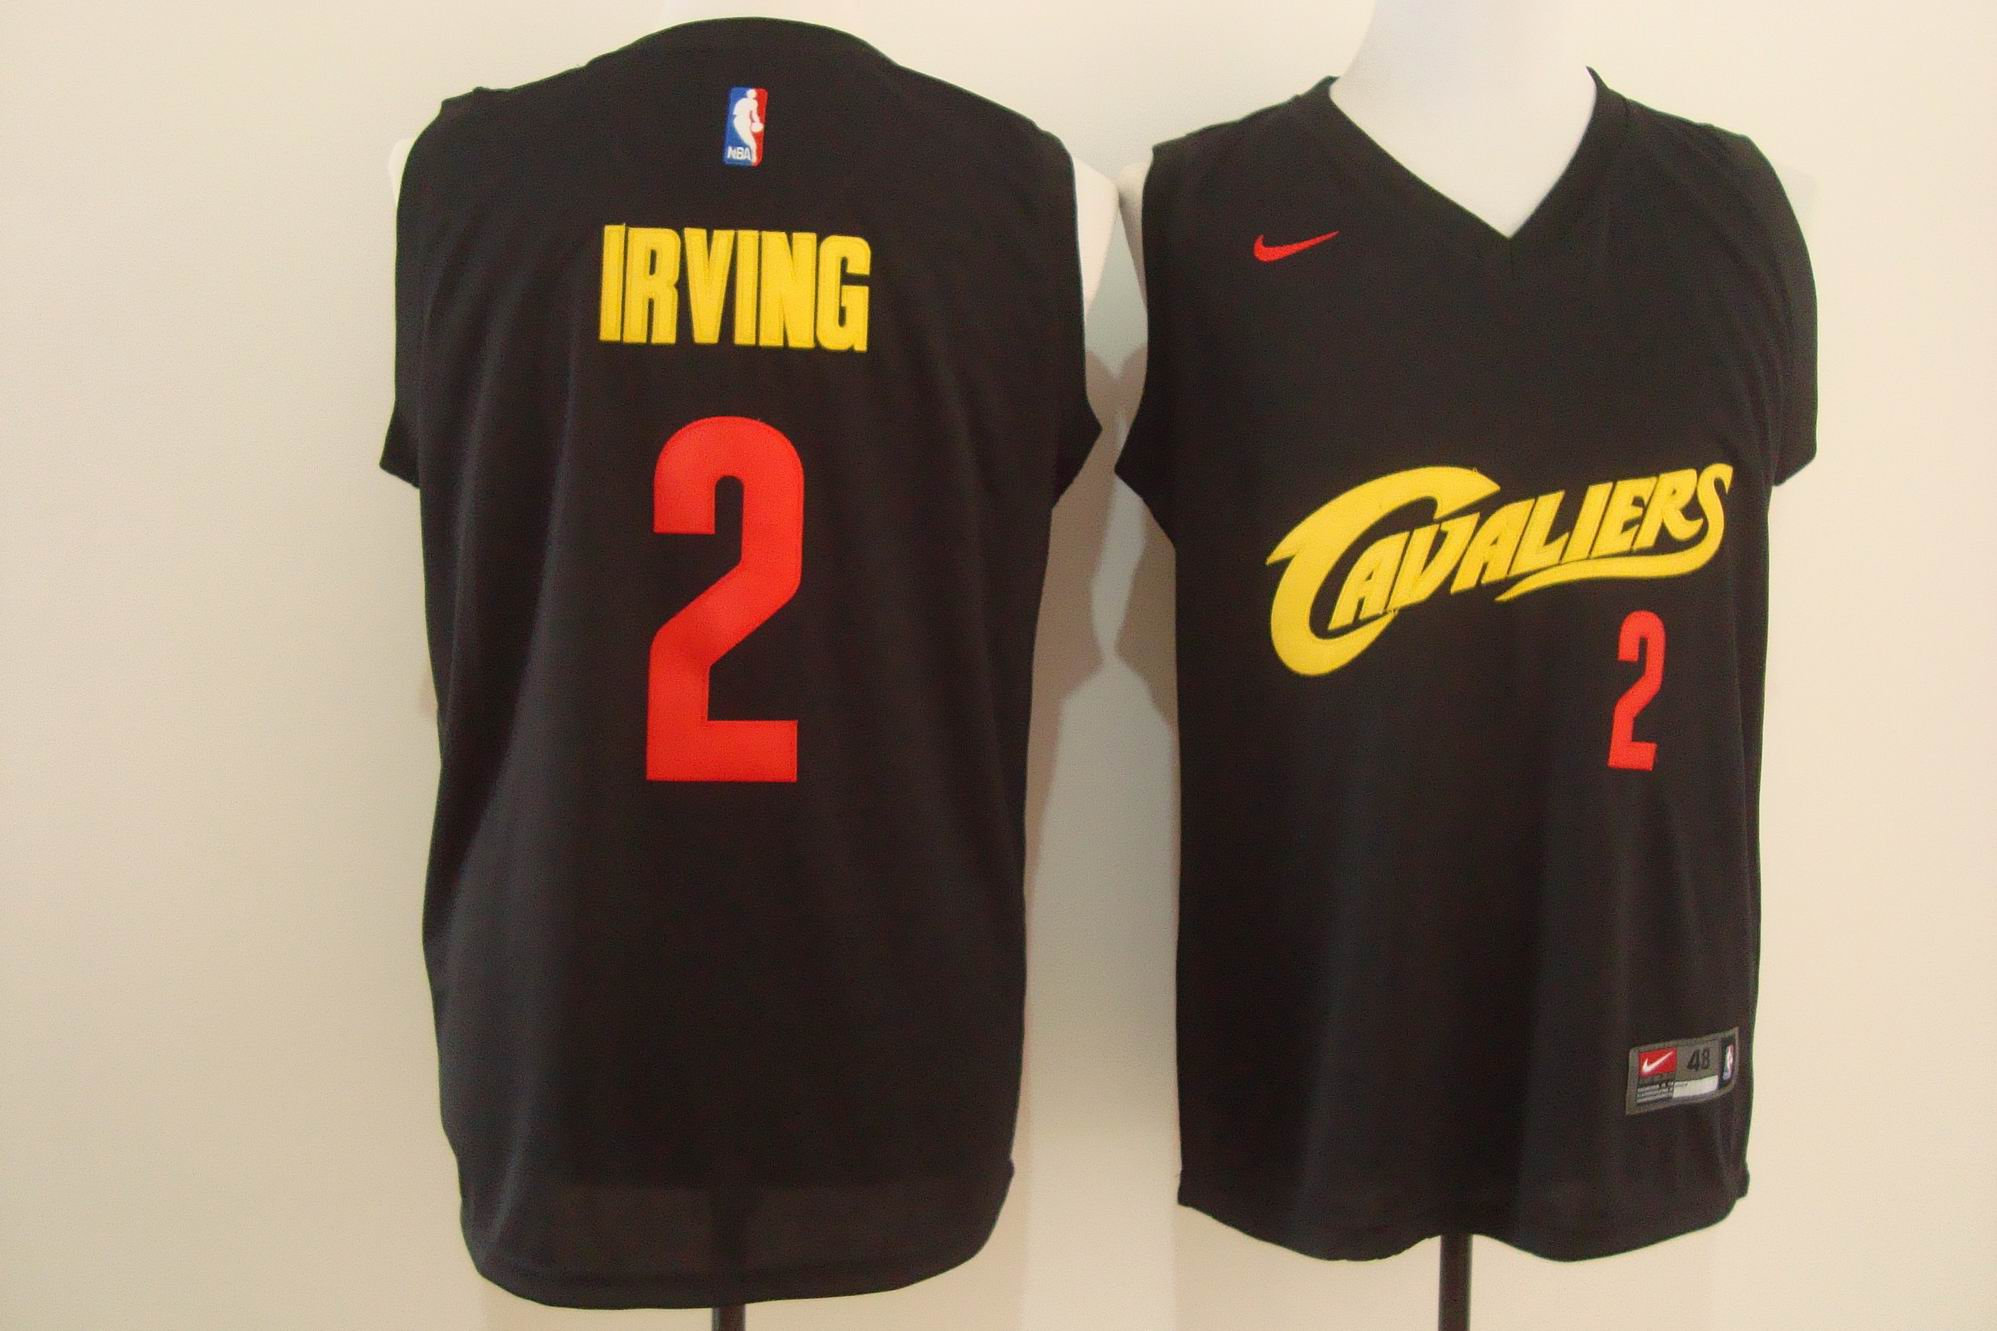 Men's Nike Cleveland Cavaliers #2 Kyrie Irving Black and Red Stitched NBA Jersey